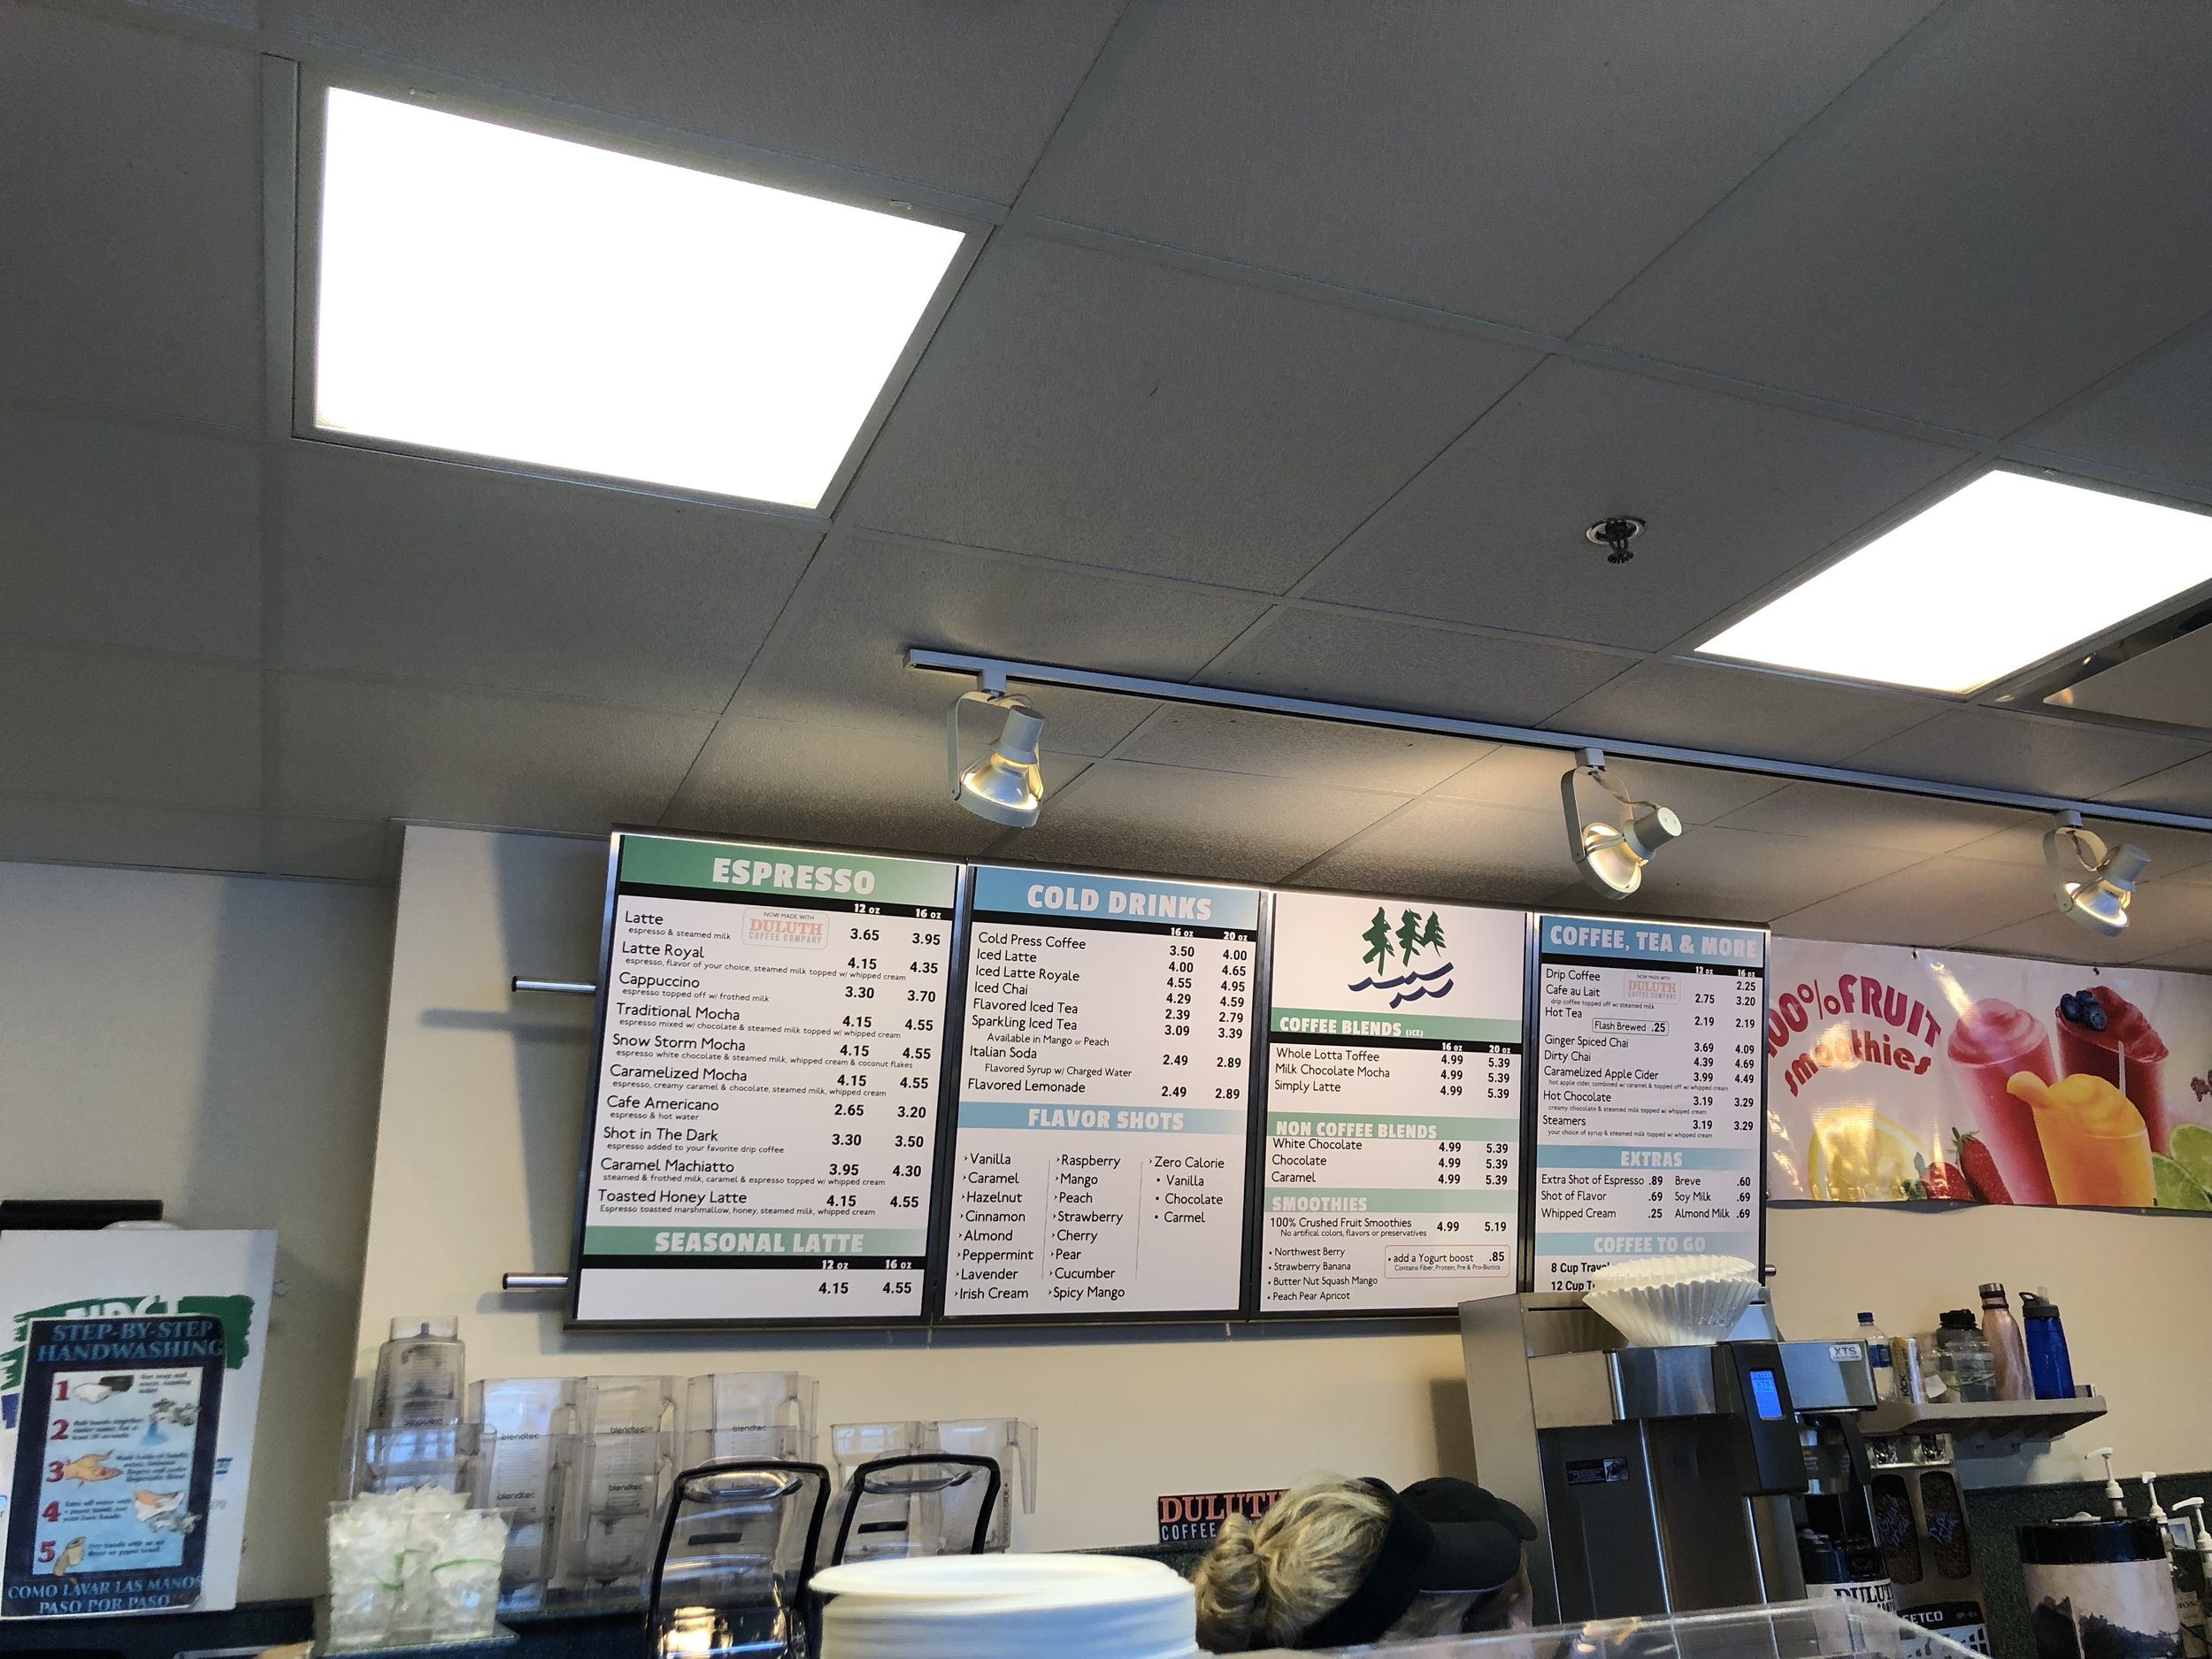 The menu was updated and replaced at Northern Shores Coffee. Photo by Samantha Church